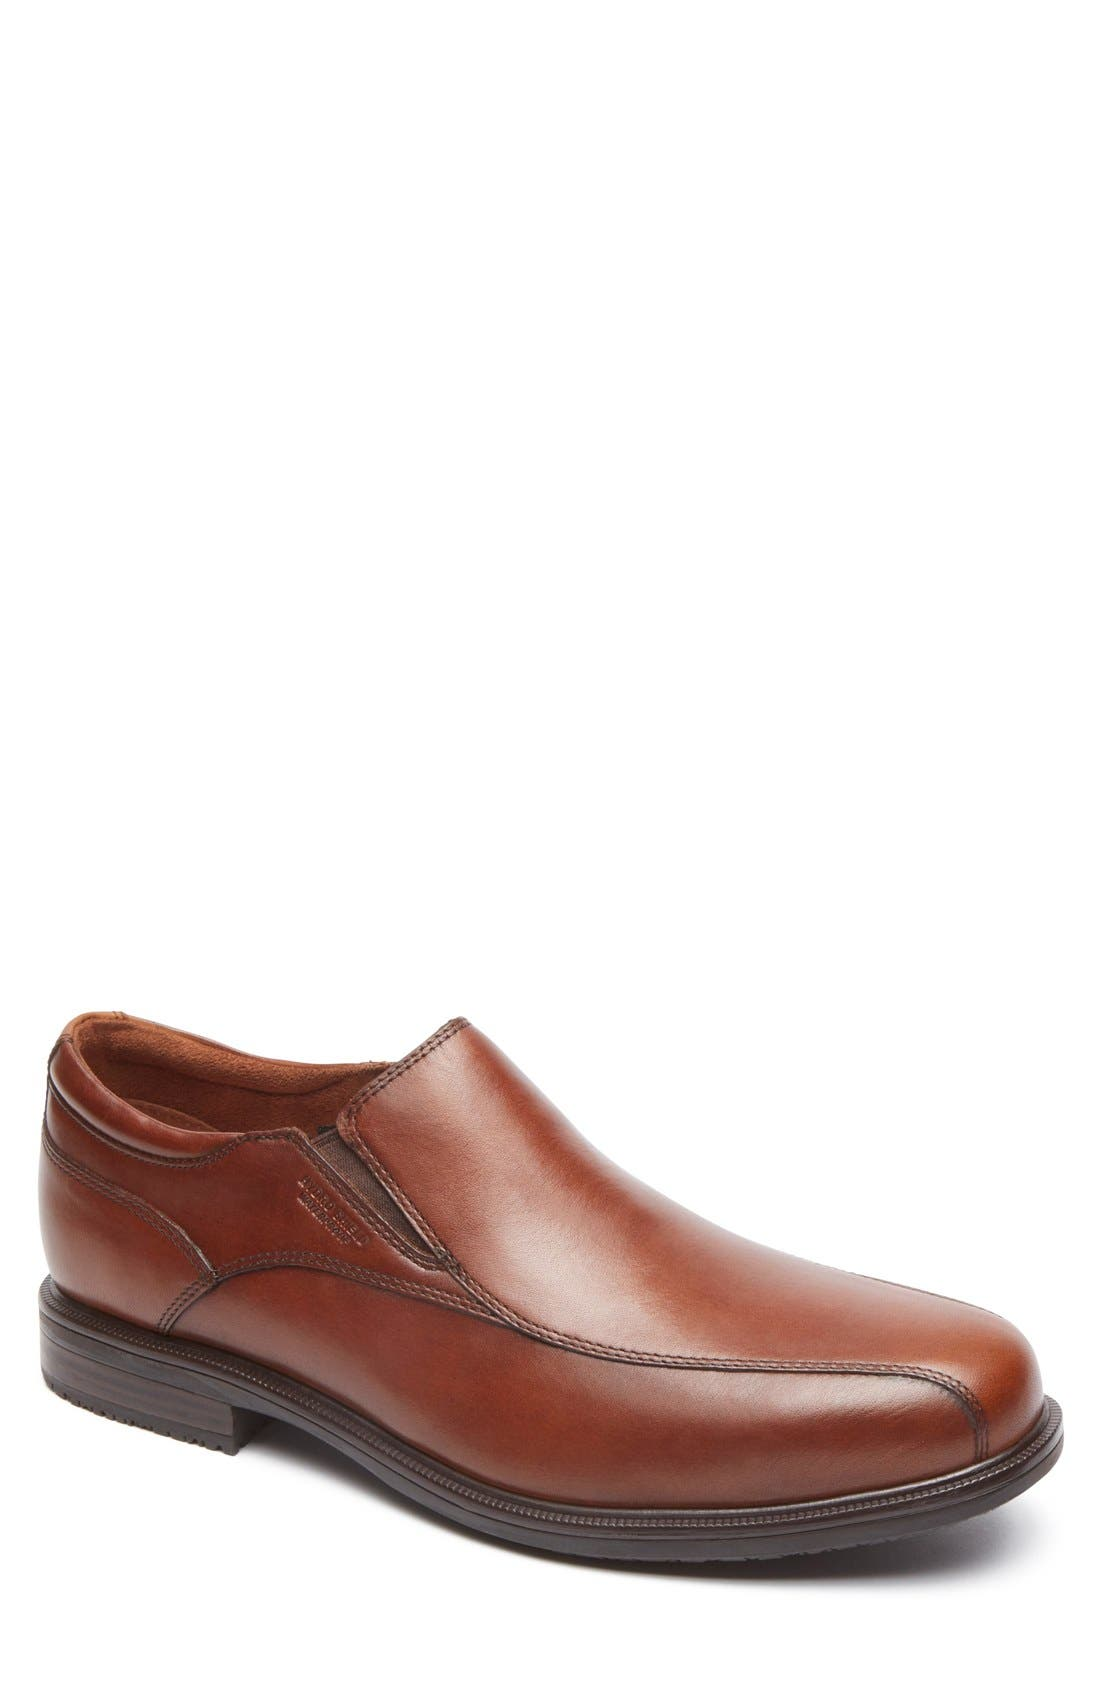 Rockport Essential Details II Bike Toe Venetian Loafer (Men)